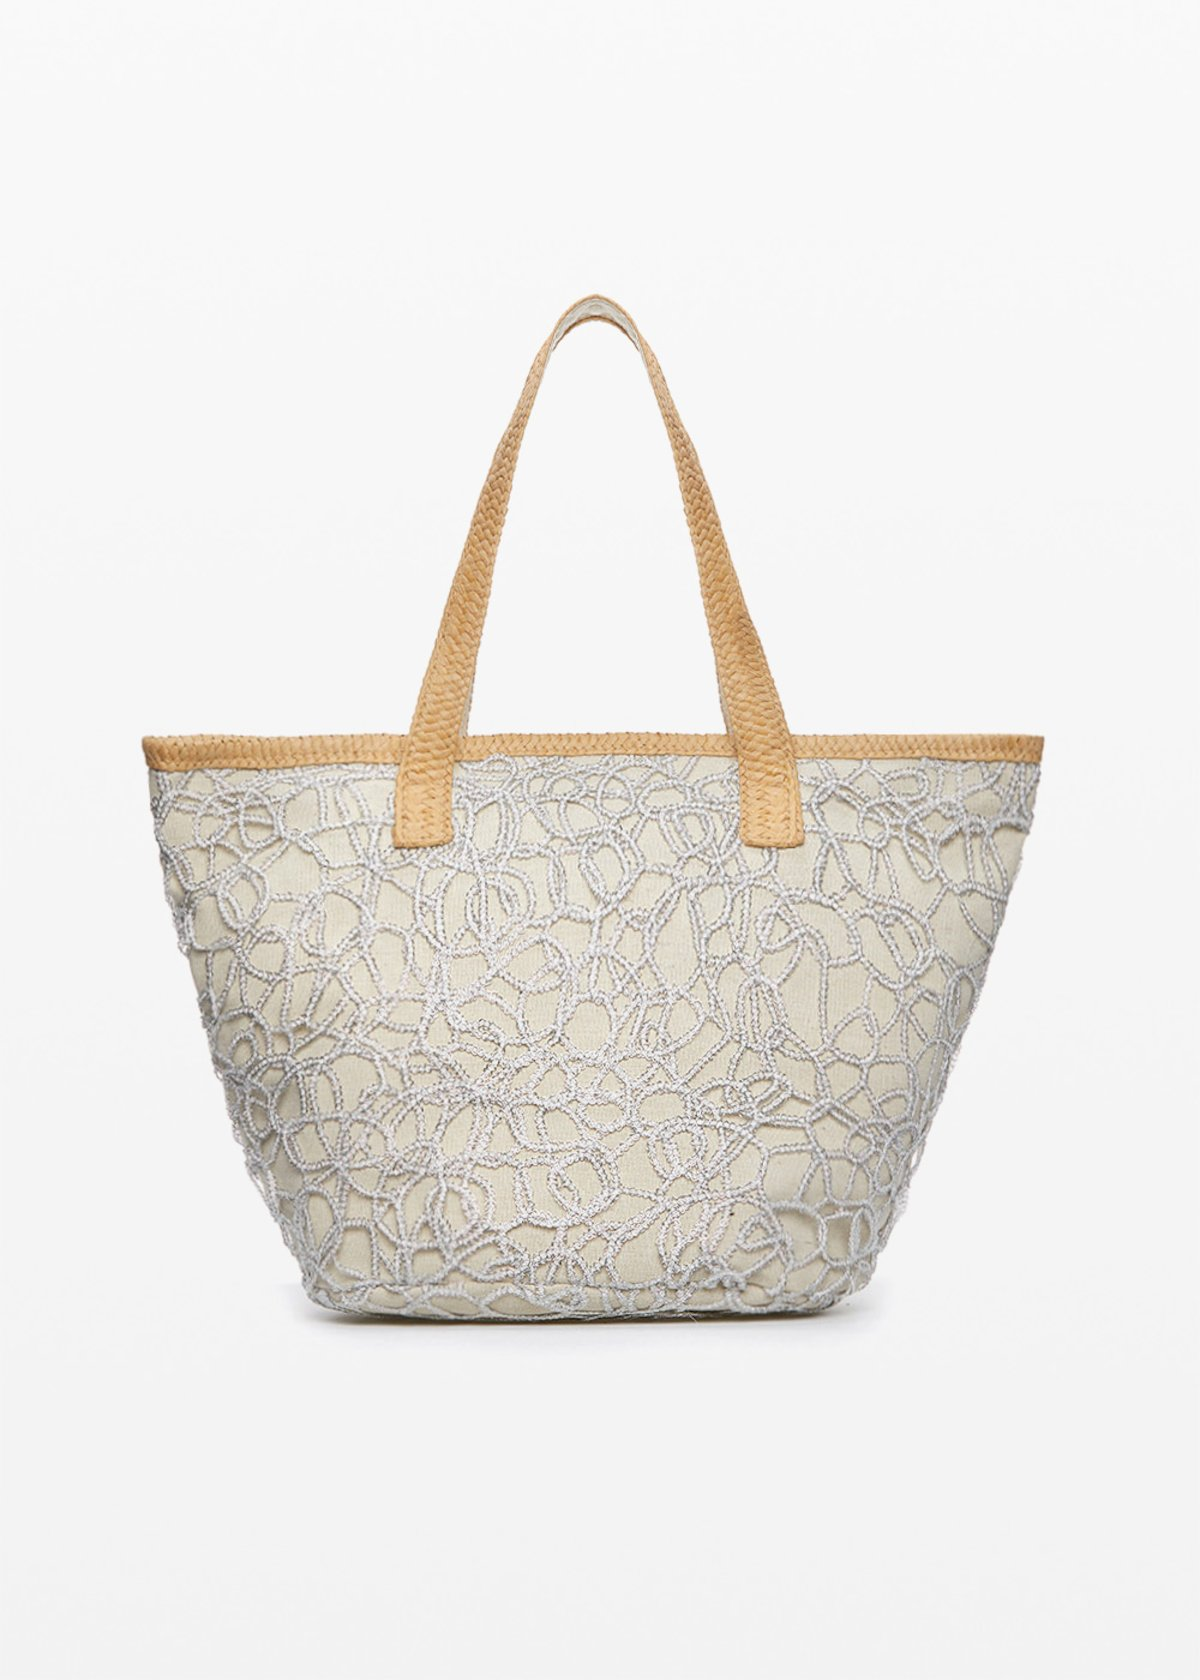 Mamdy bag of straw and fabric with lurex basket - Silver - Woman - Category image